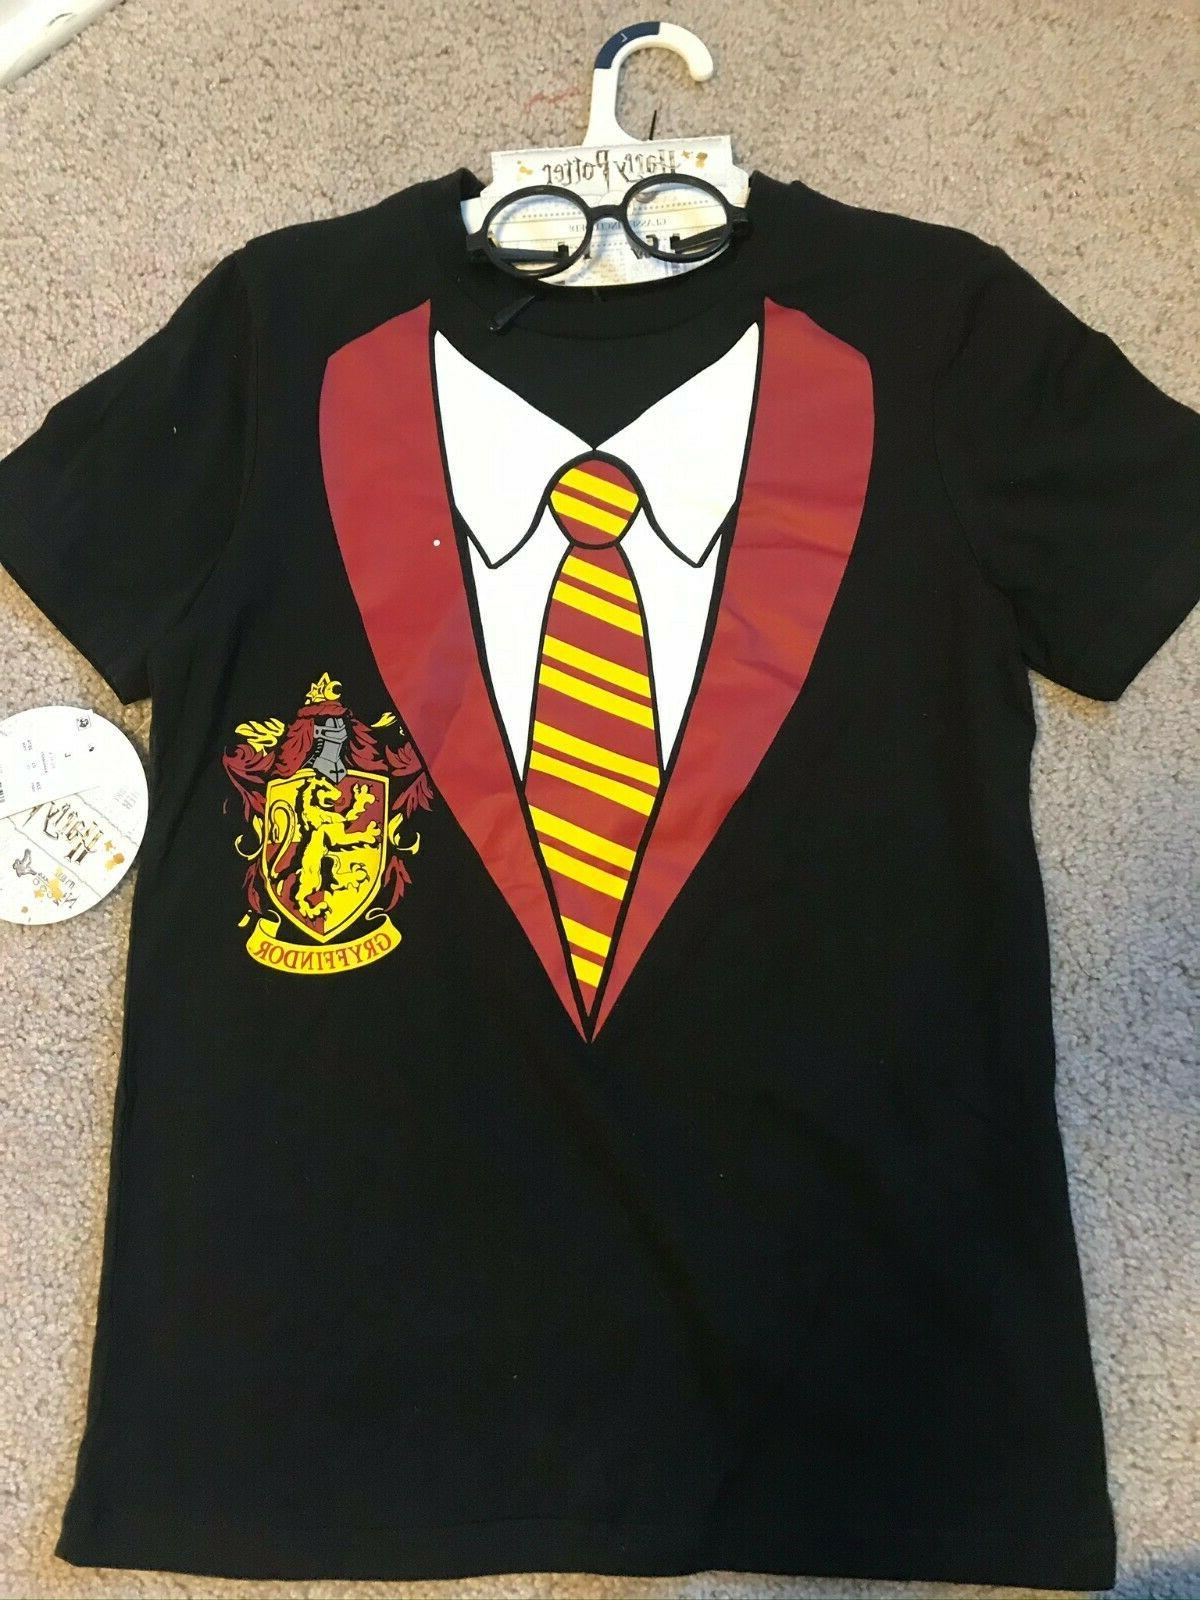 nwt harry potter wizarding world gryffindor youth